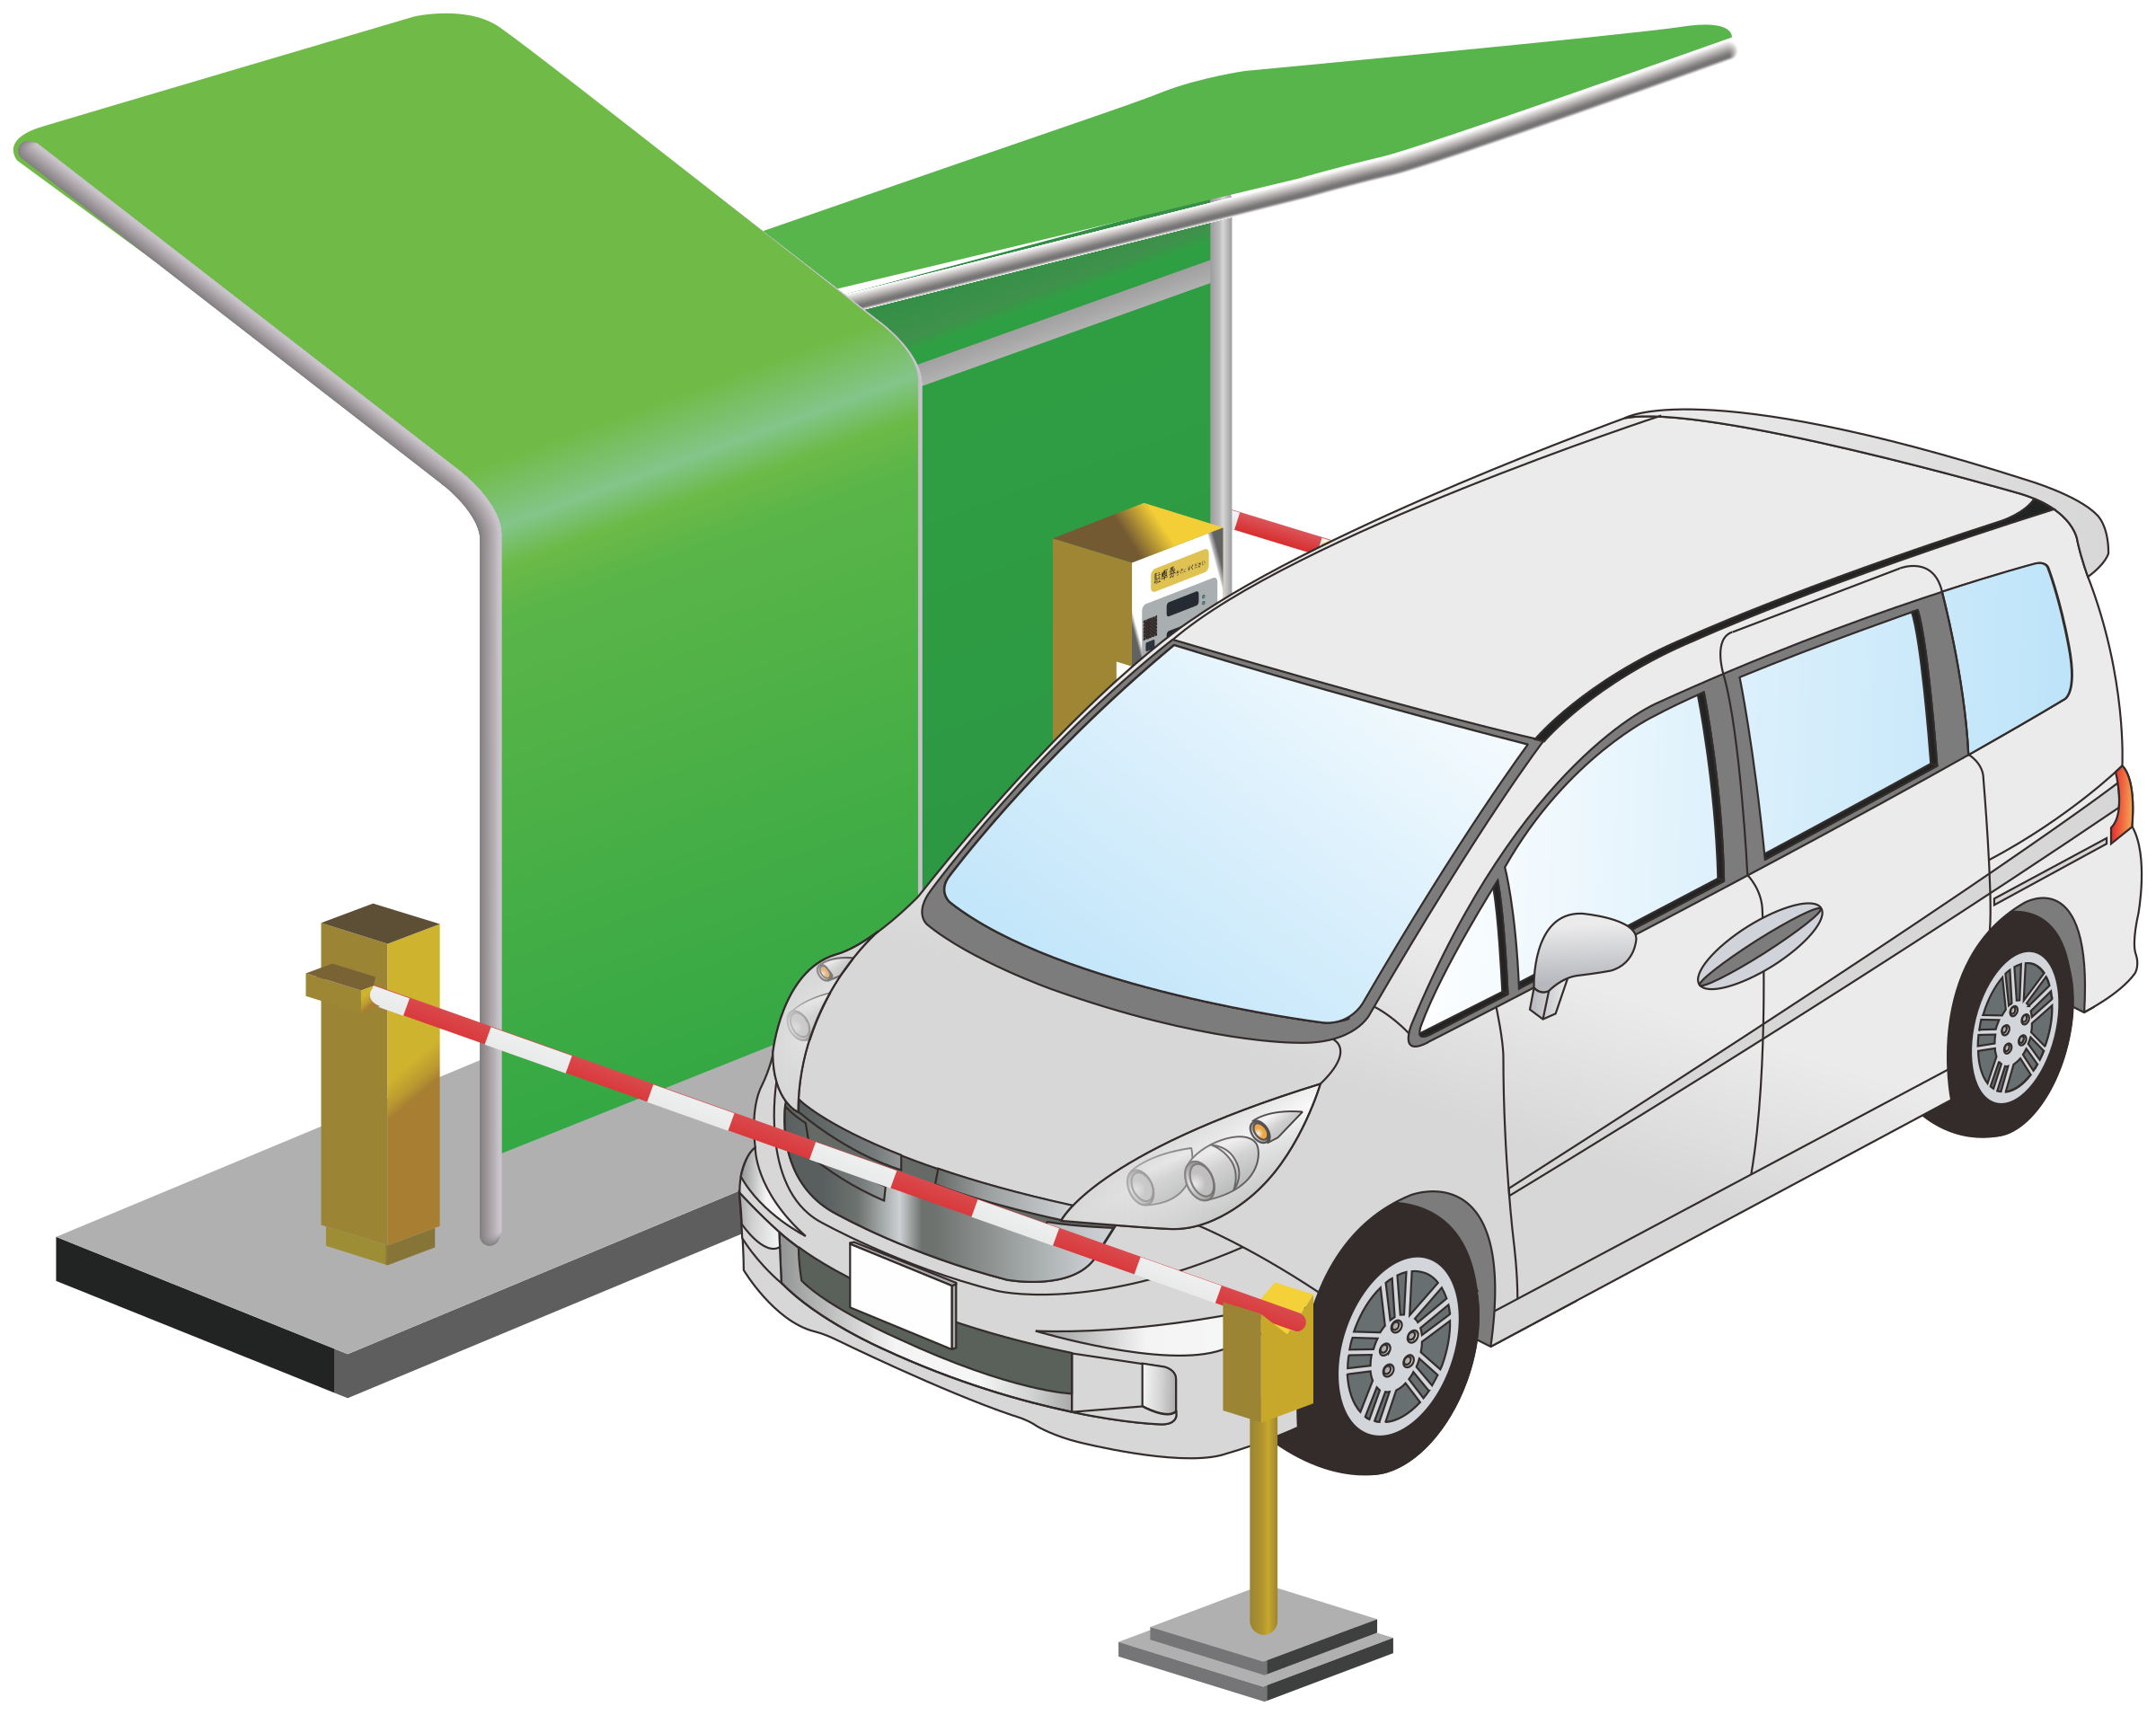 Parking system big image. Minivan clipart green car